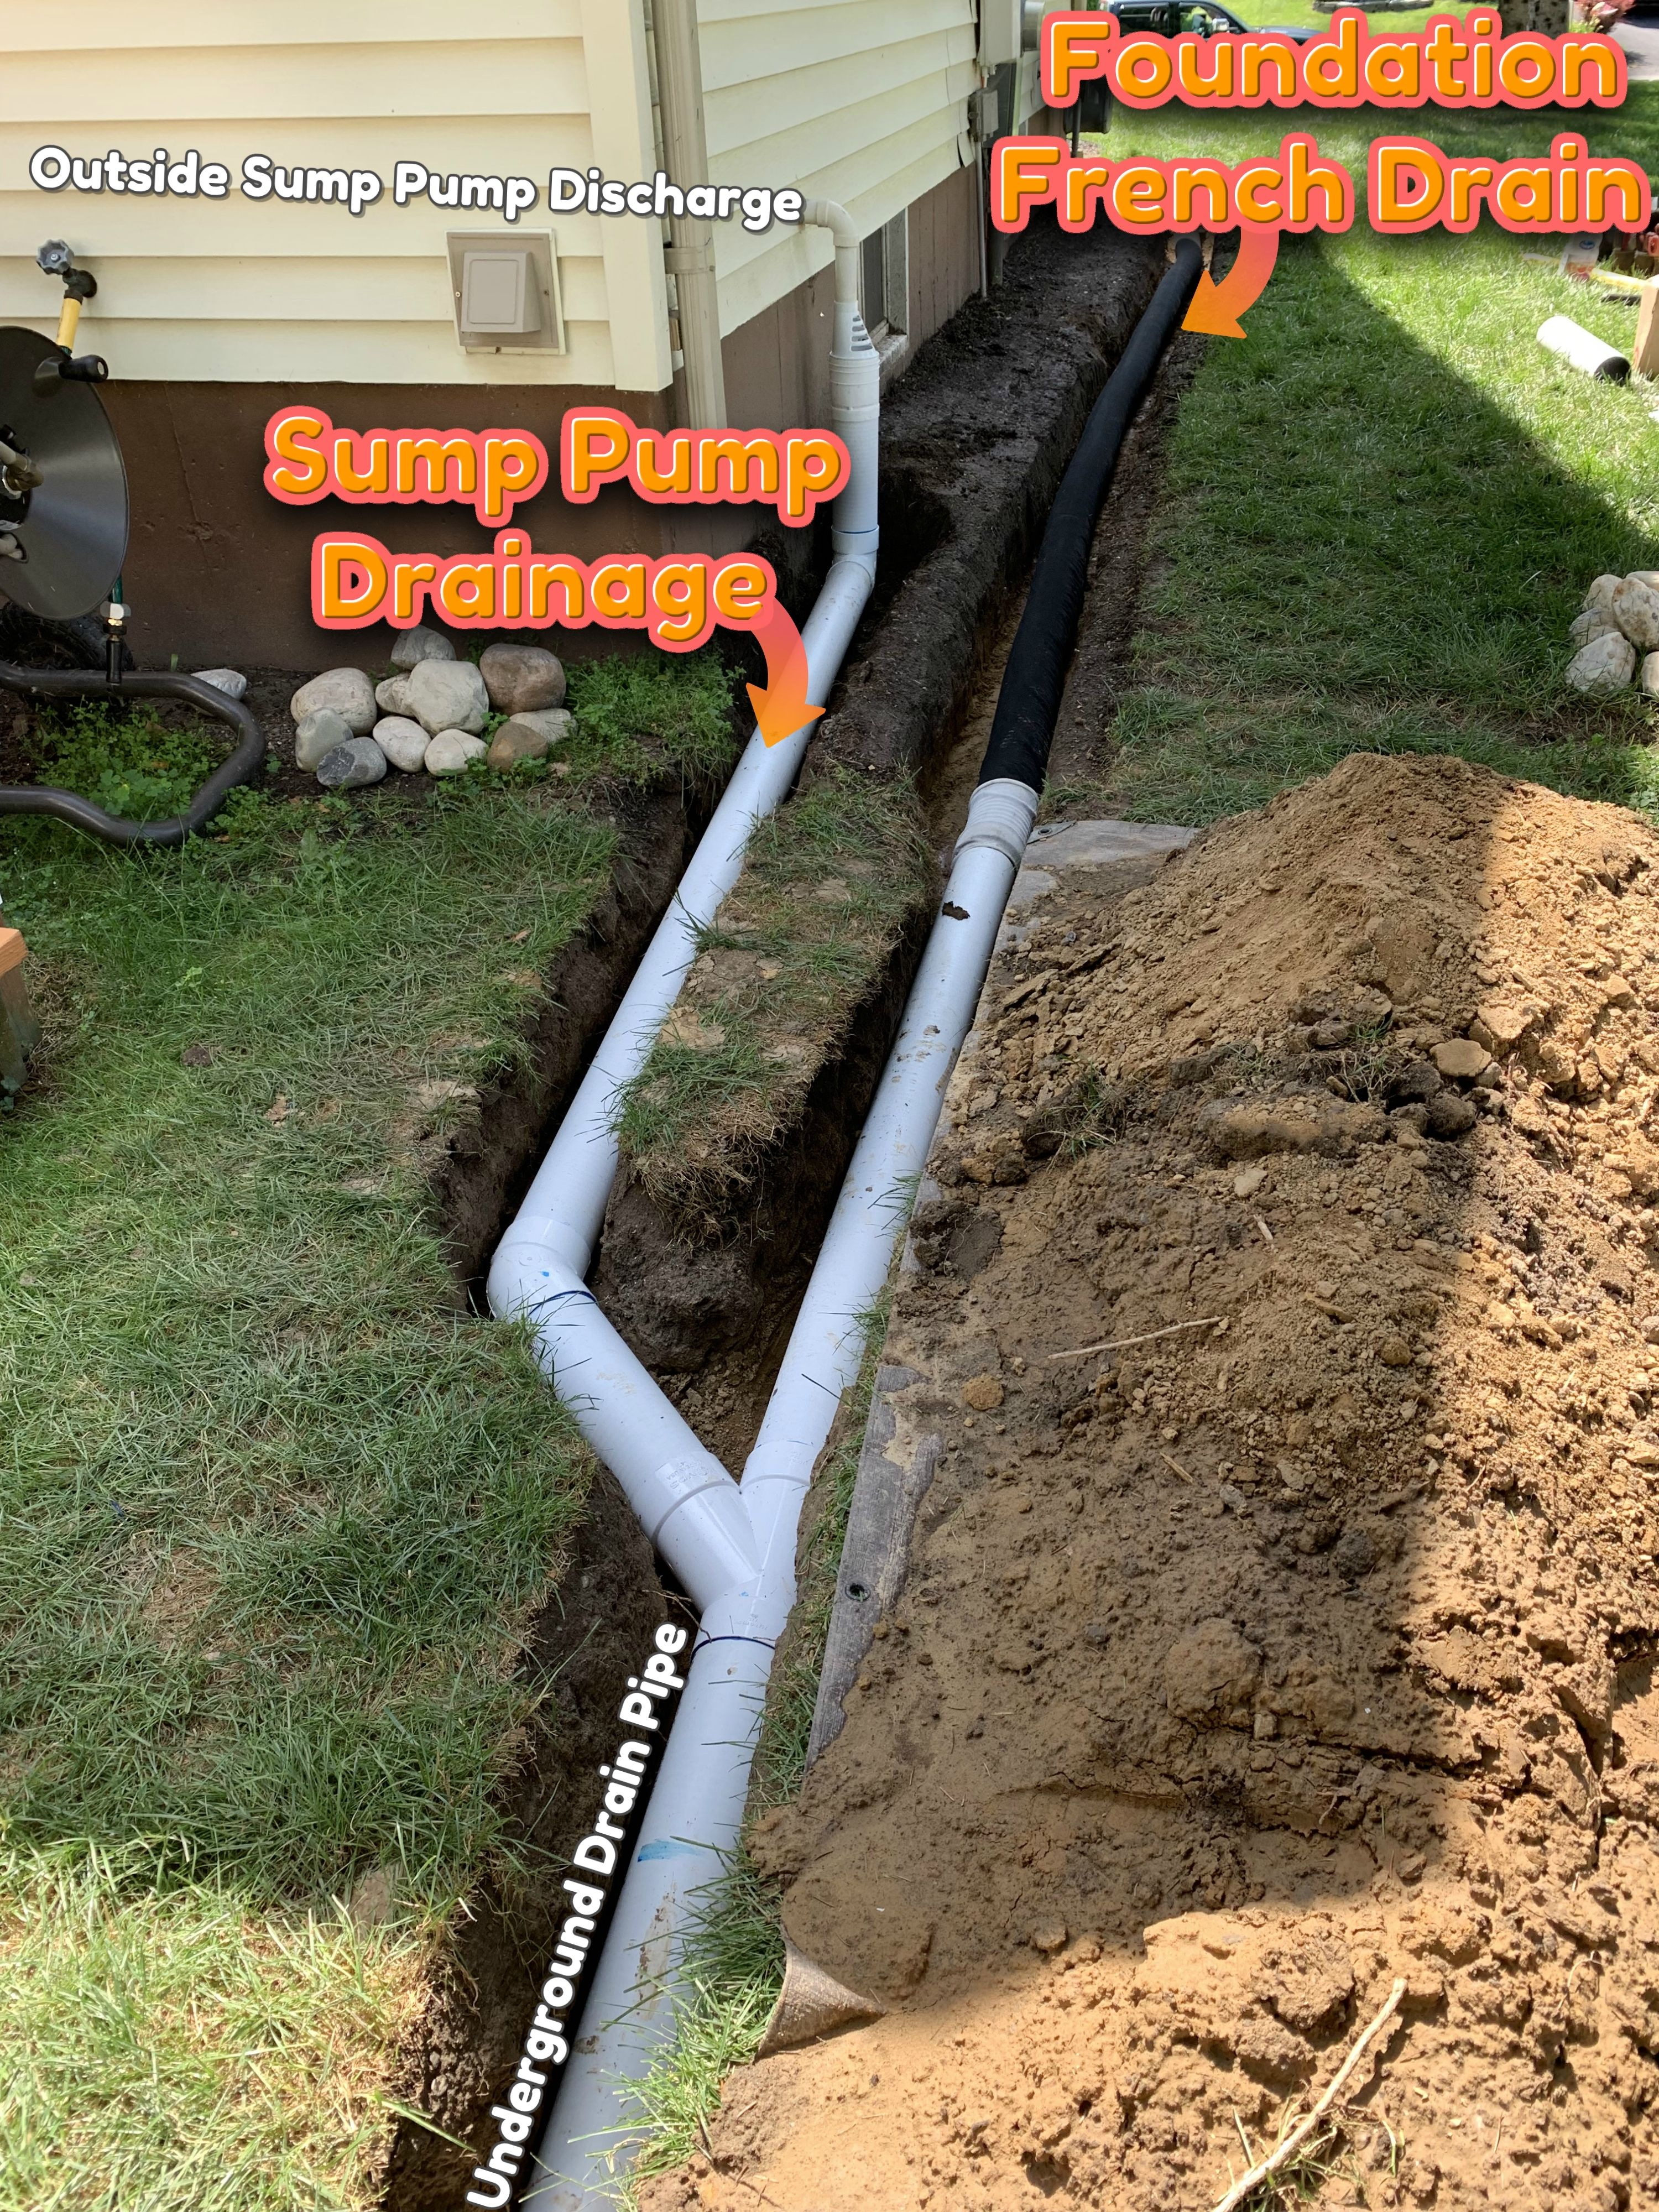 Foundation French Drain Install And Outside Sump Pump Discharge Piped Underground In Drainage System Sump Pump Discharge French Drain Installation French Drain